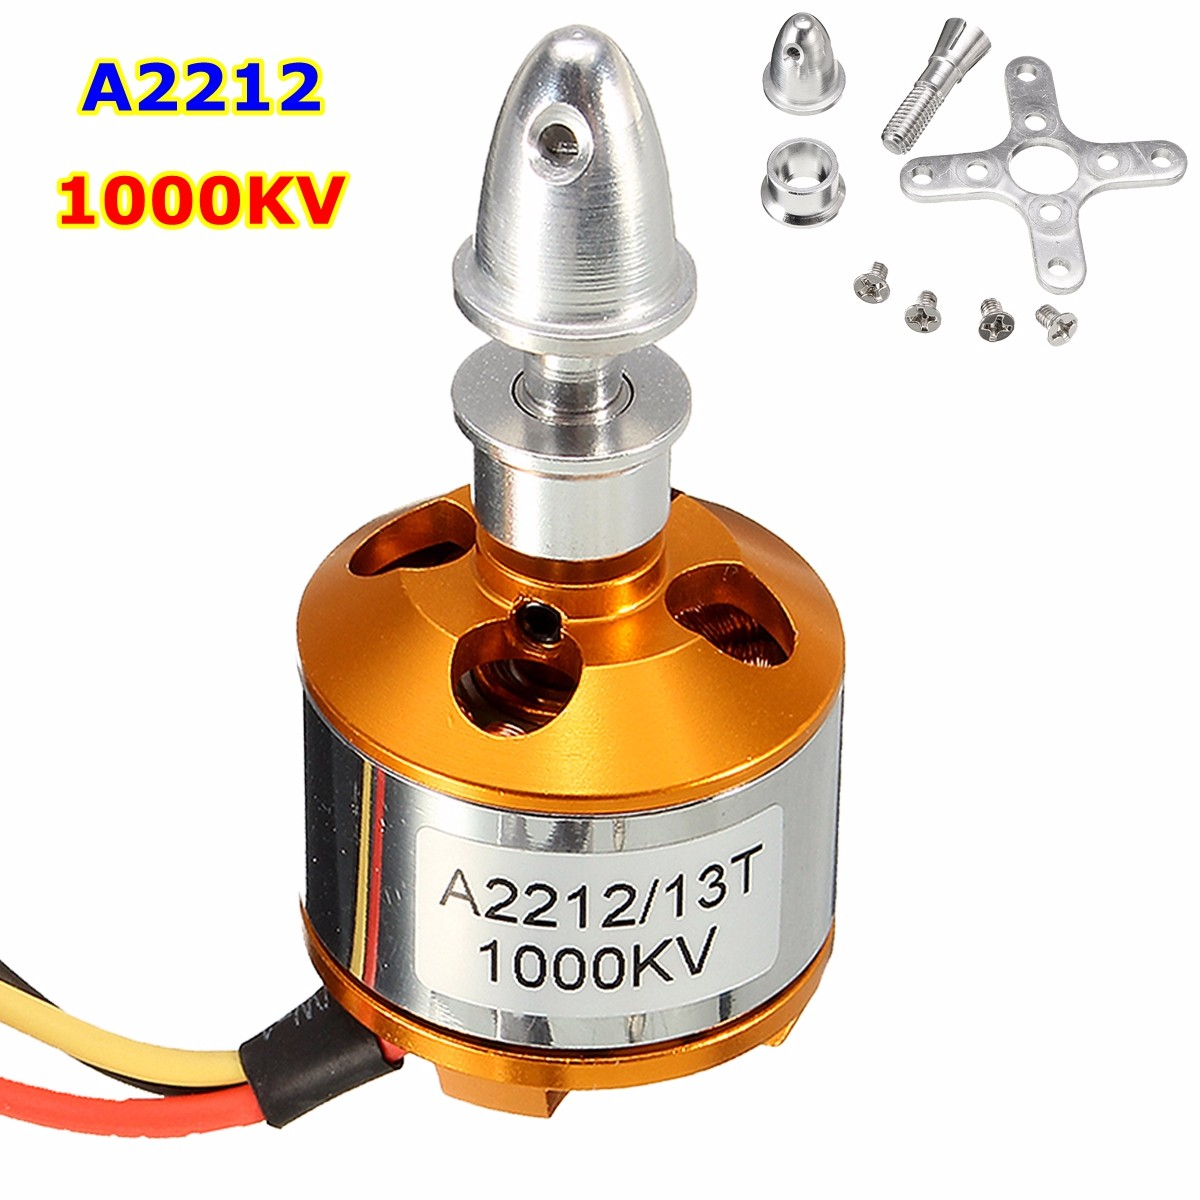 1000Kv A2212 Brushless Drone Outrunner Motor For Aircraft Helicopter Quadcopter цены